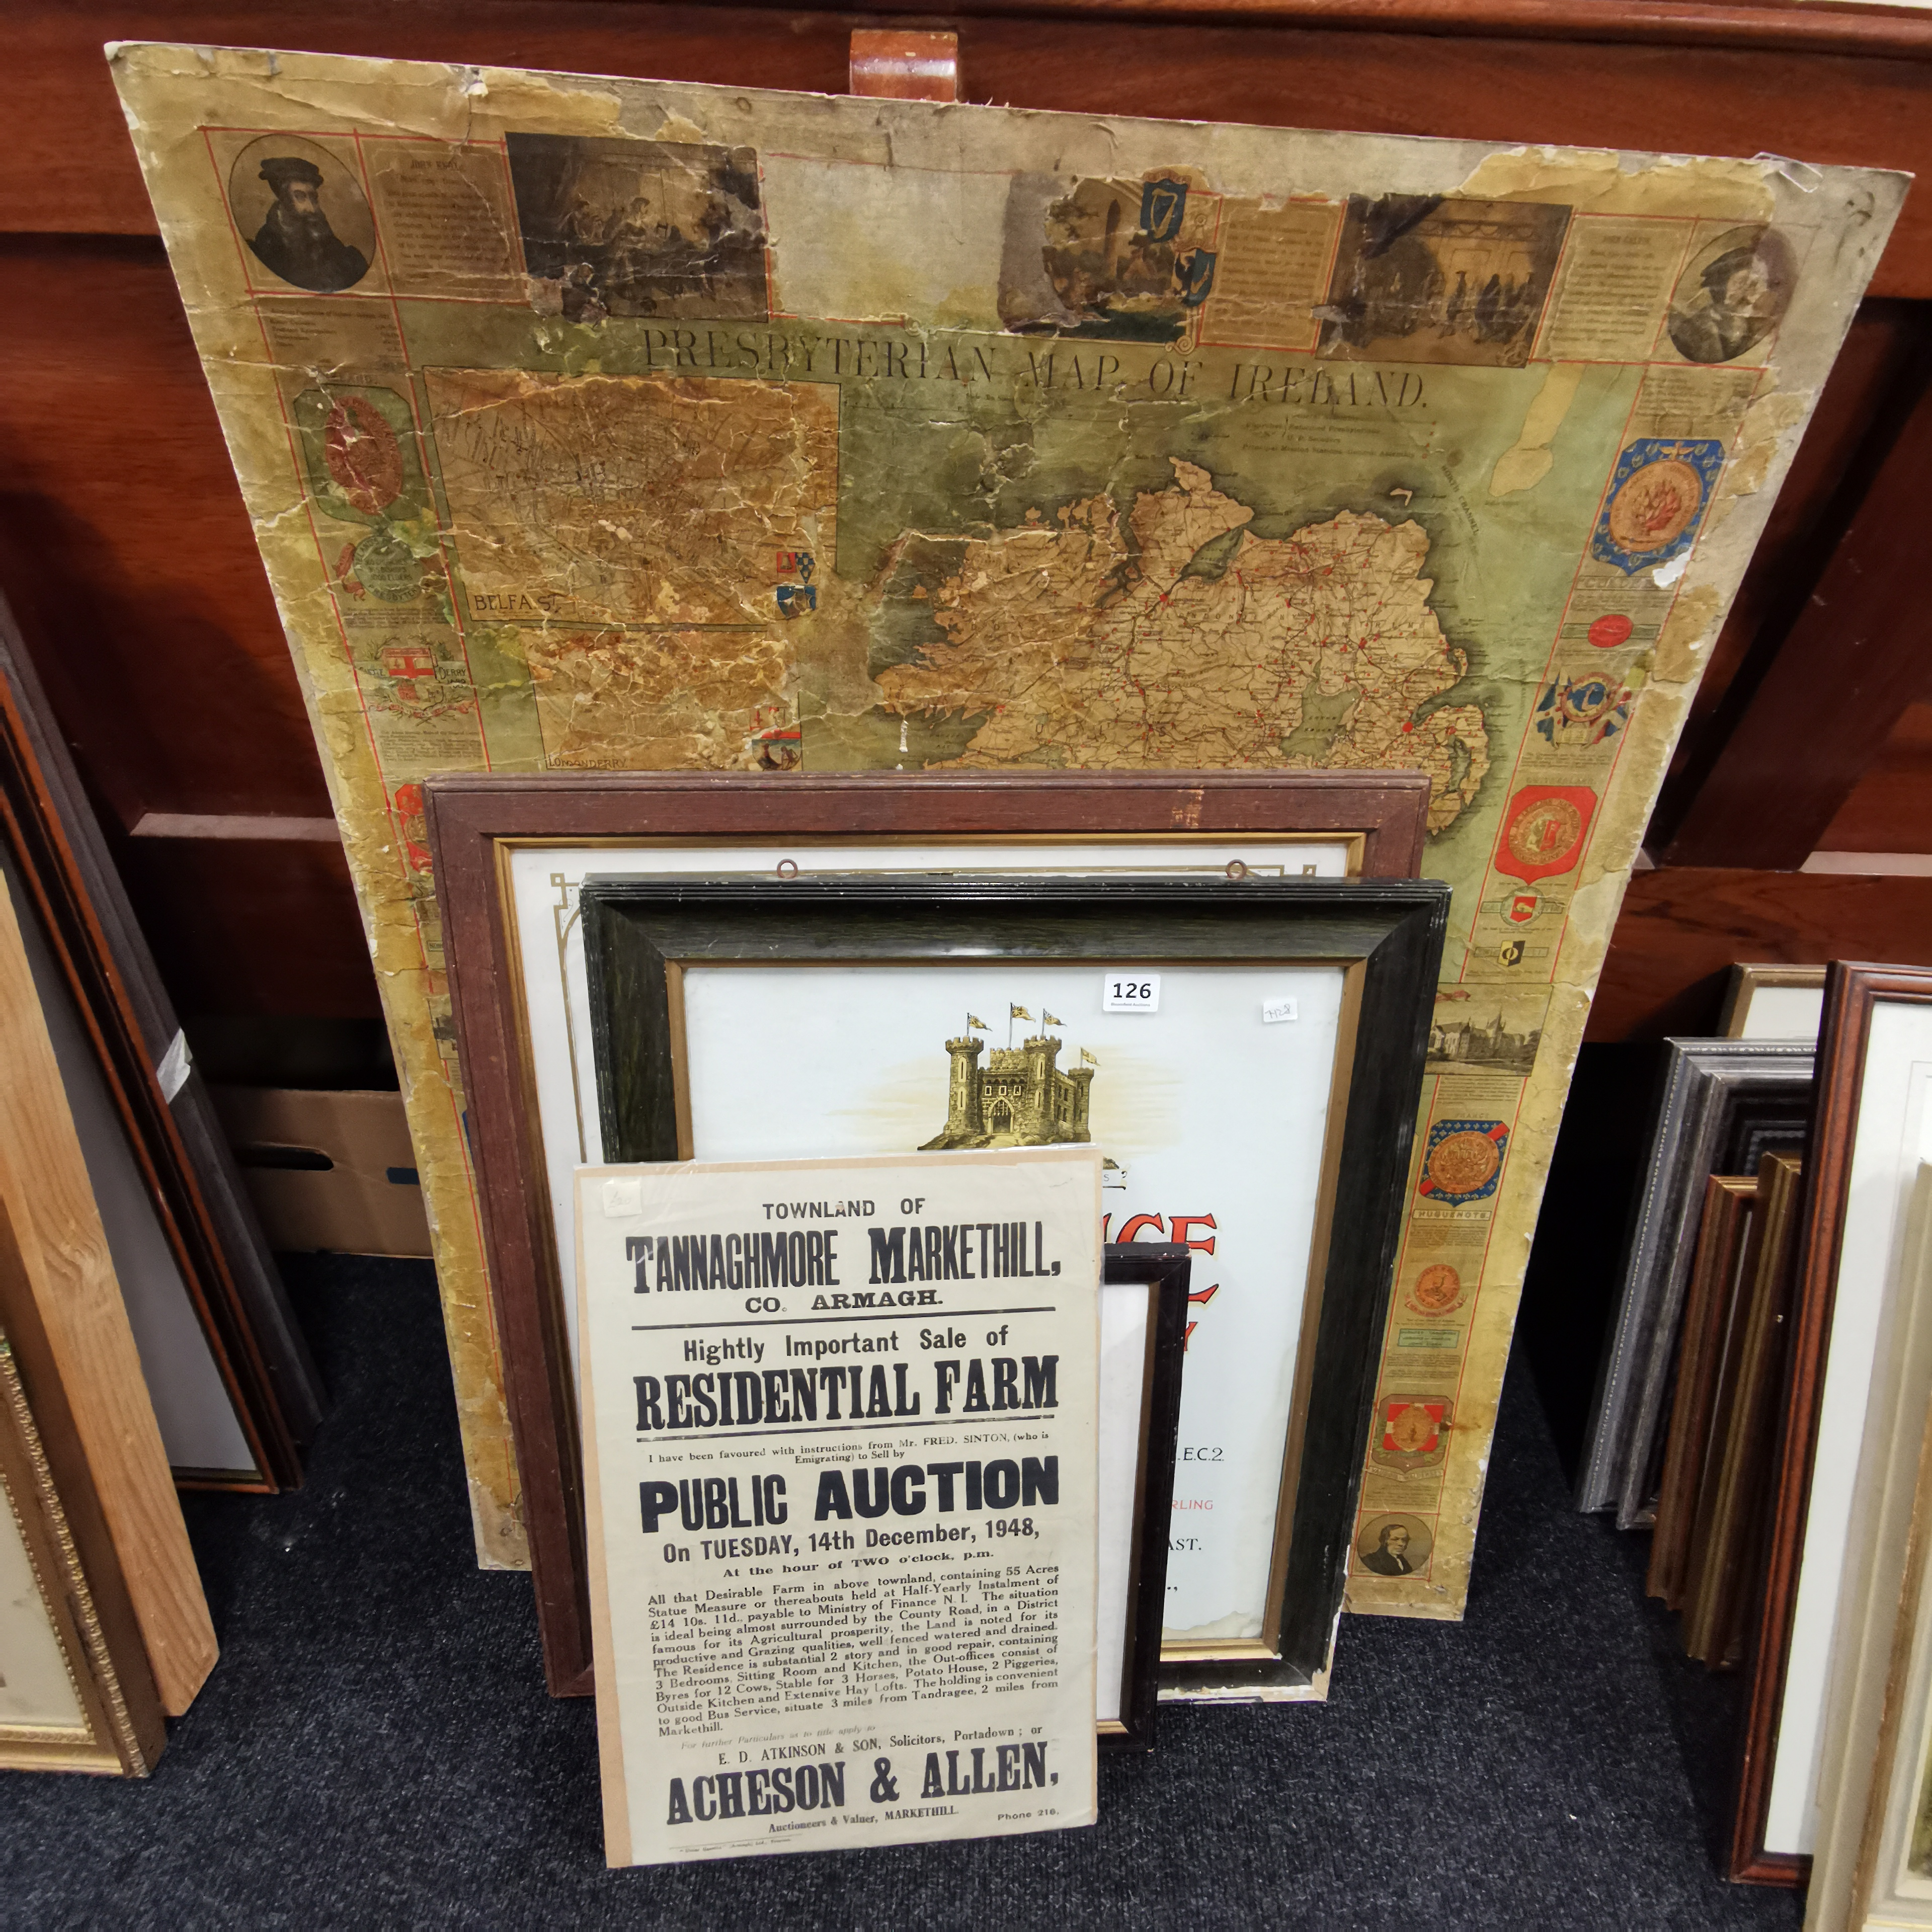 Lot 126 - OLD MAP & 3 FRAMED CERTIFICATES & MARKETHILL PUBLIC AUCTION NOTICE